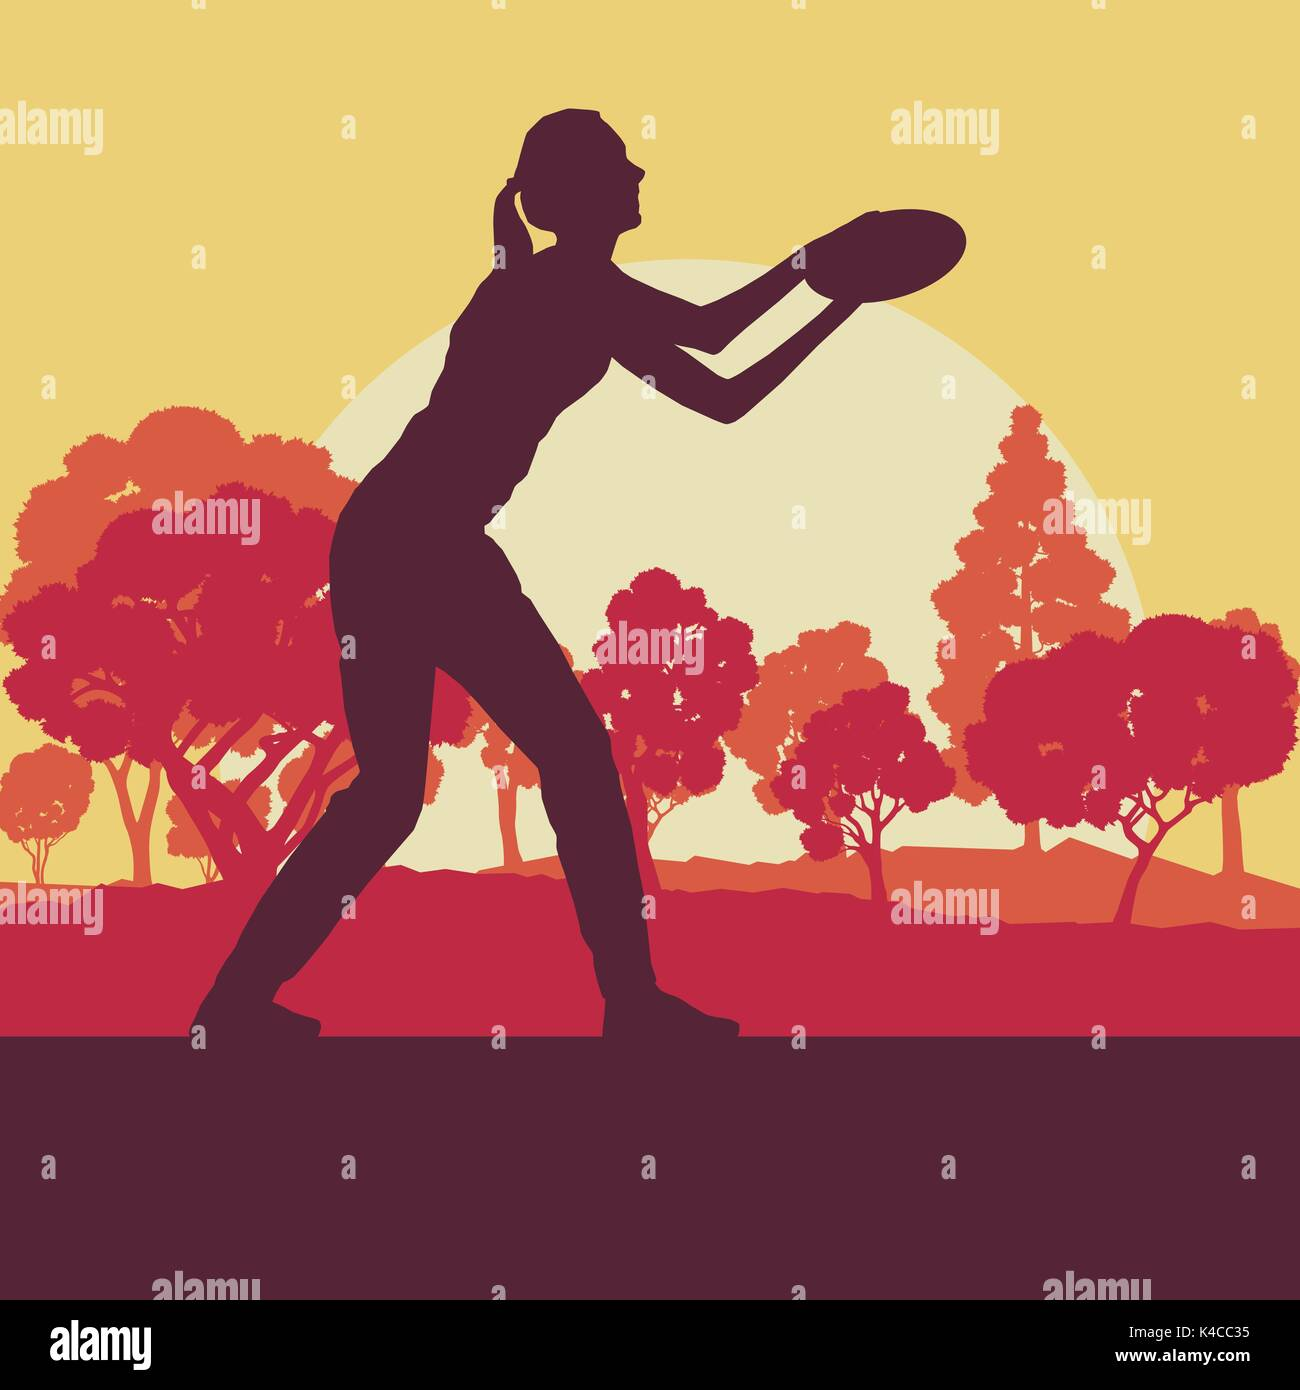 Flying disc throw game woman playing in park with trees vector background - Stock Vector